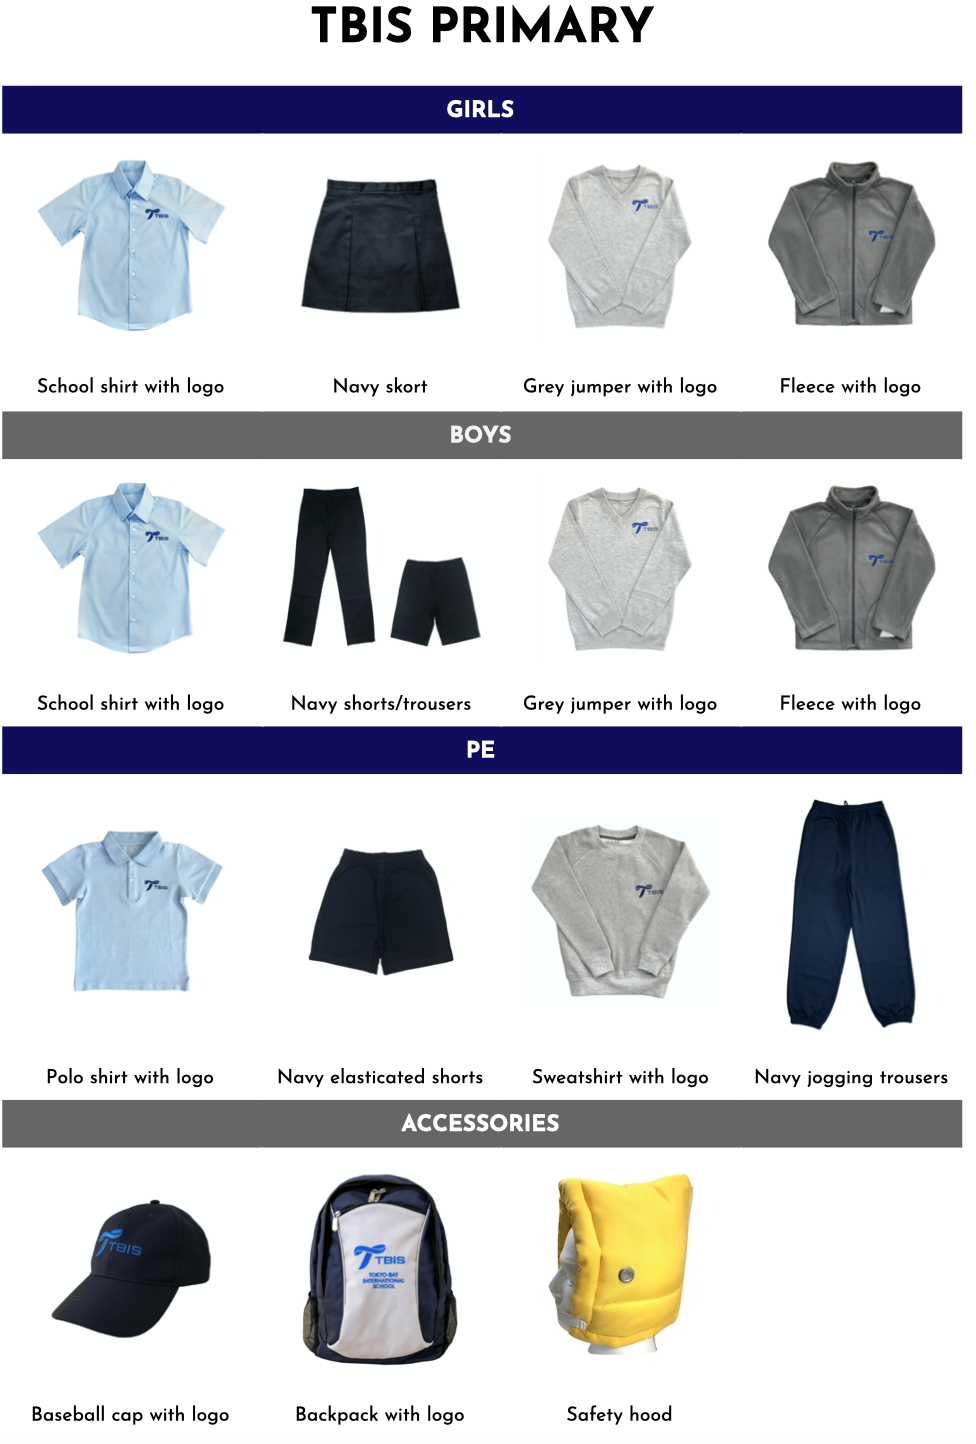 tbis-uniform-guide-2020-2.png